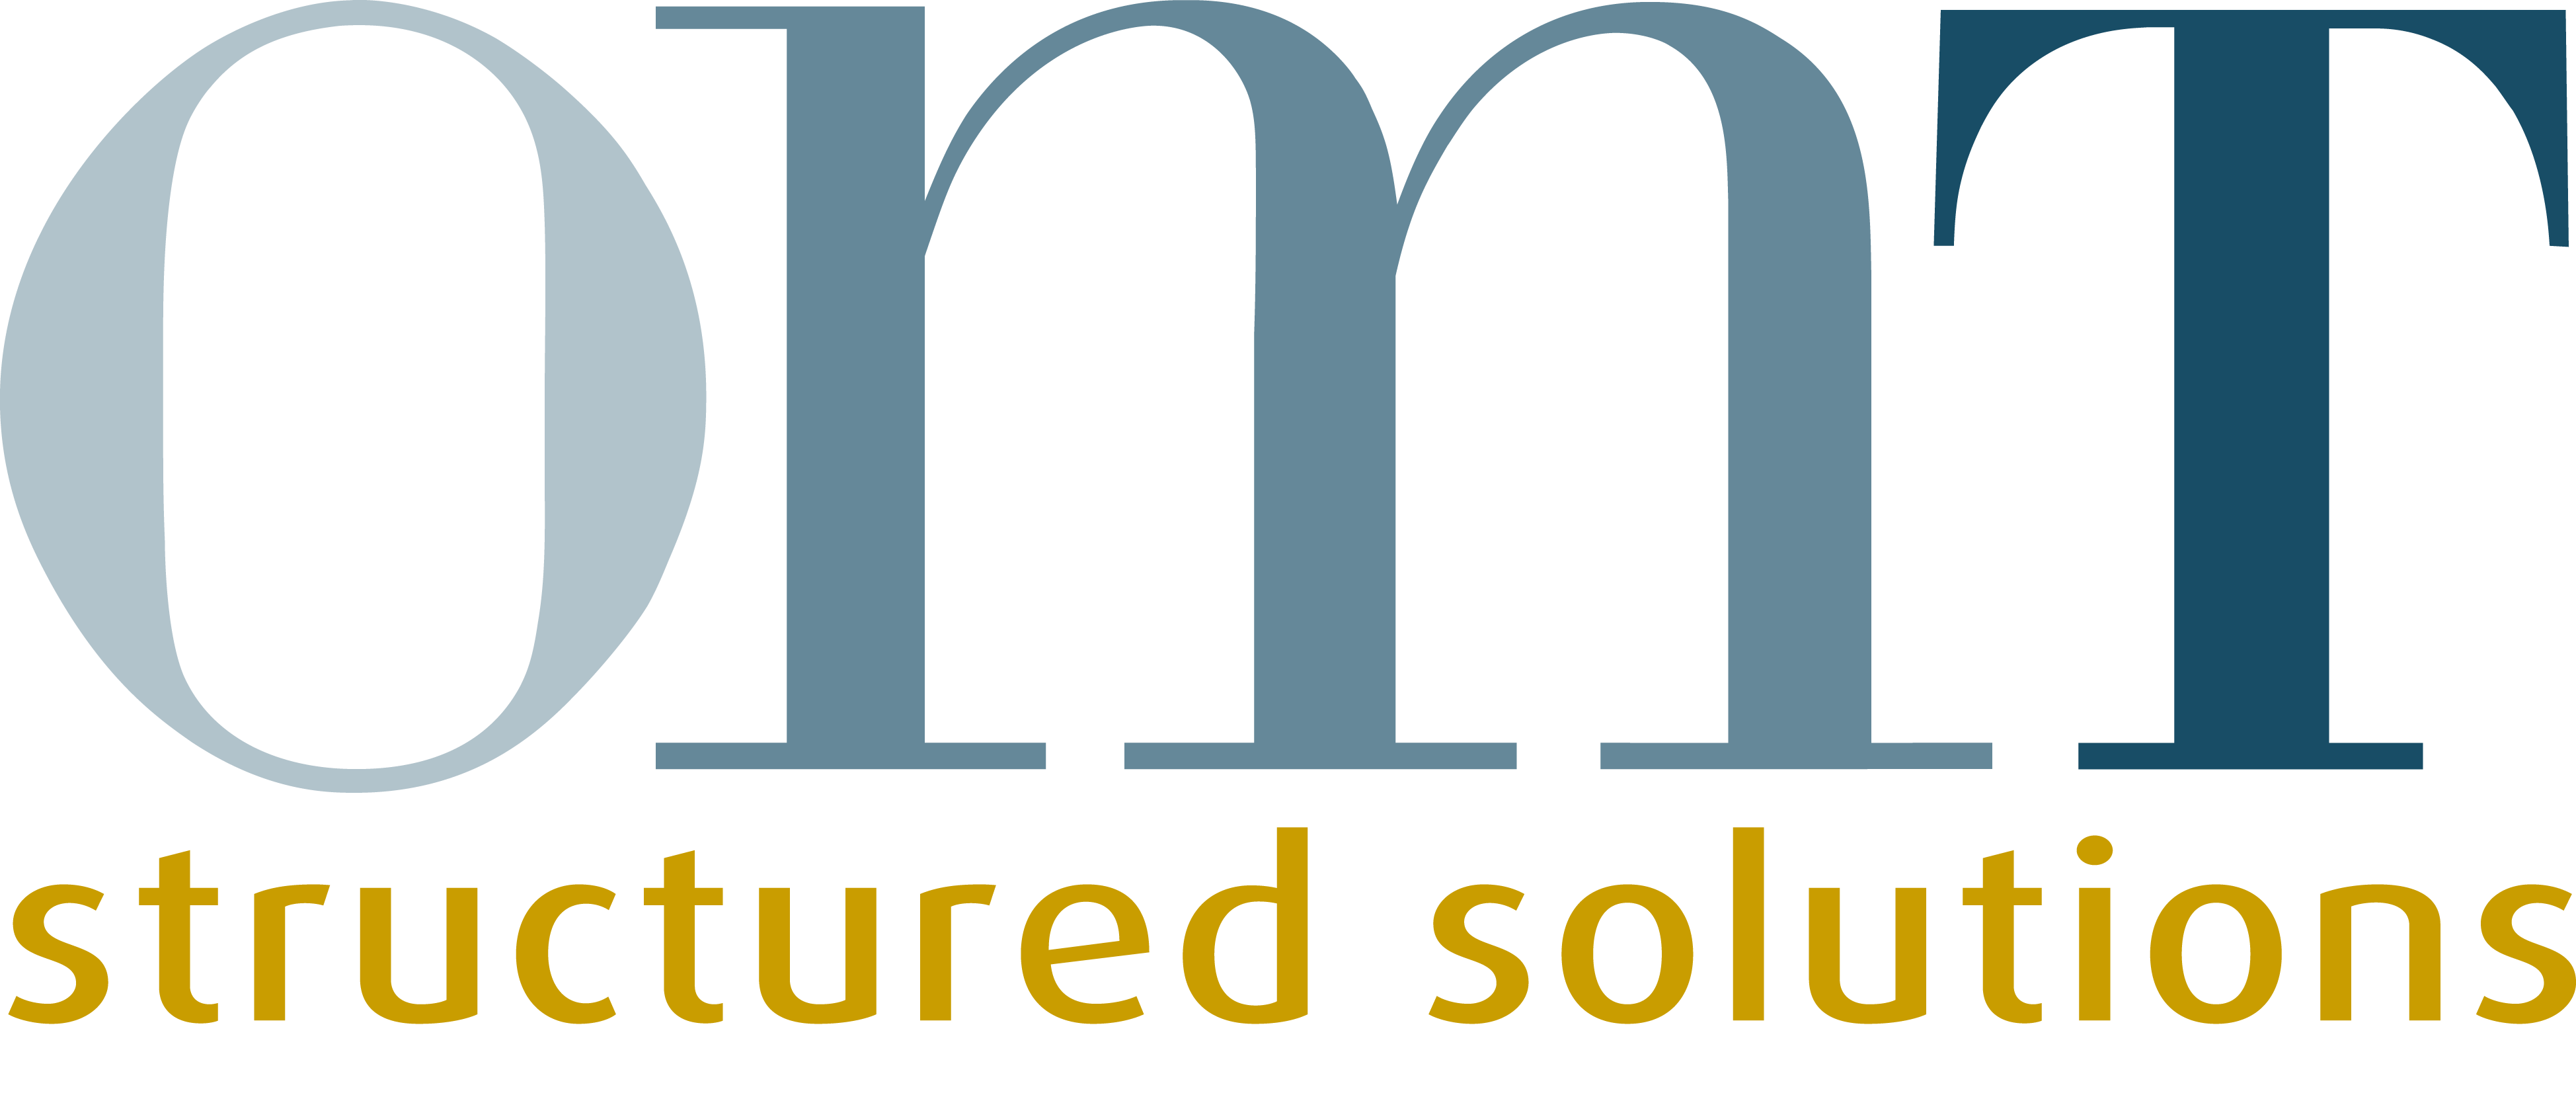 omt structured solutions Logo